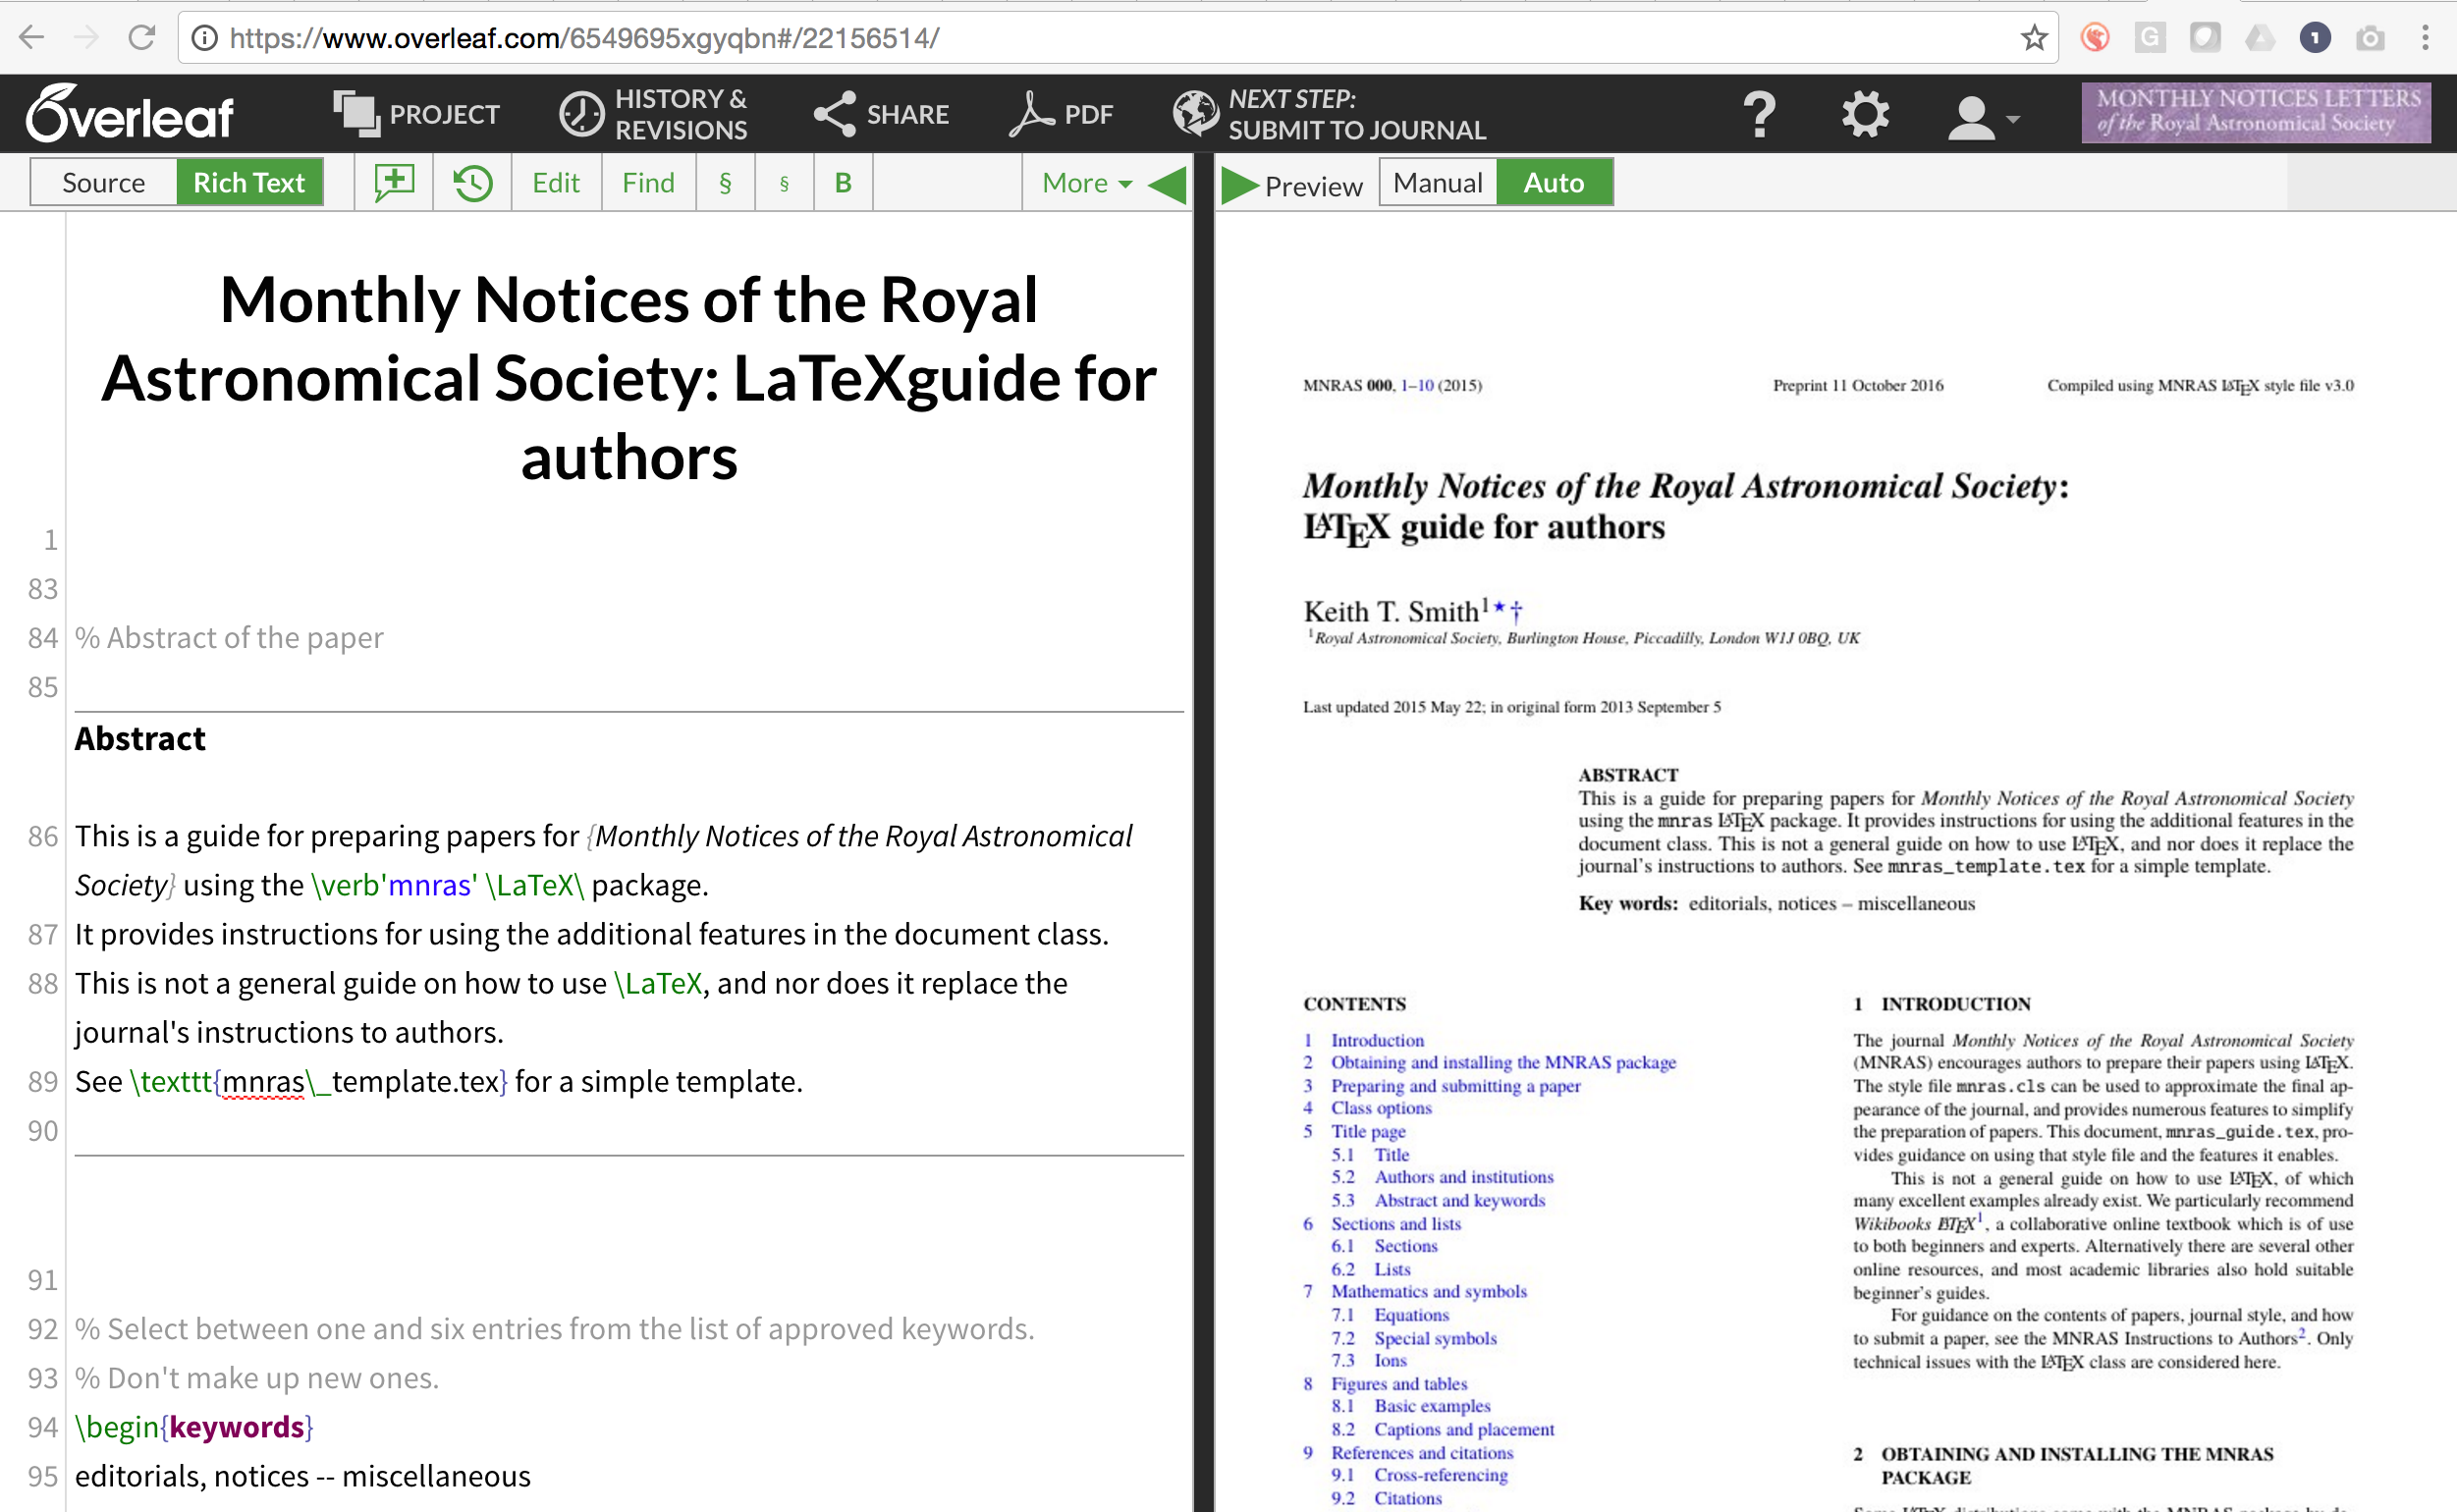 New Partnership Between The Royal Astronomical Society And Overleaf